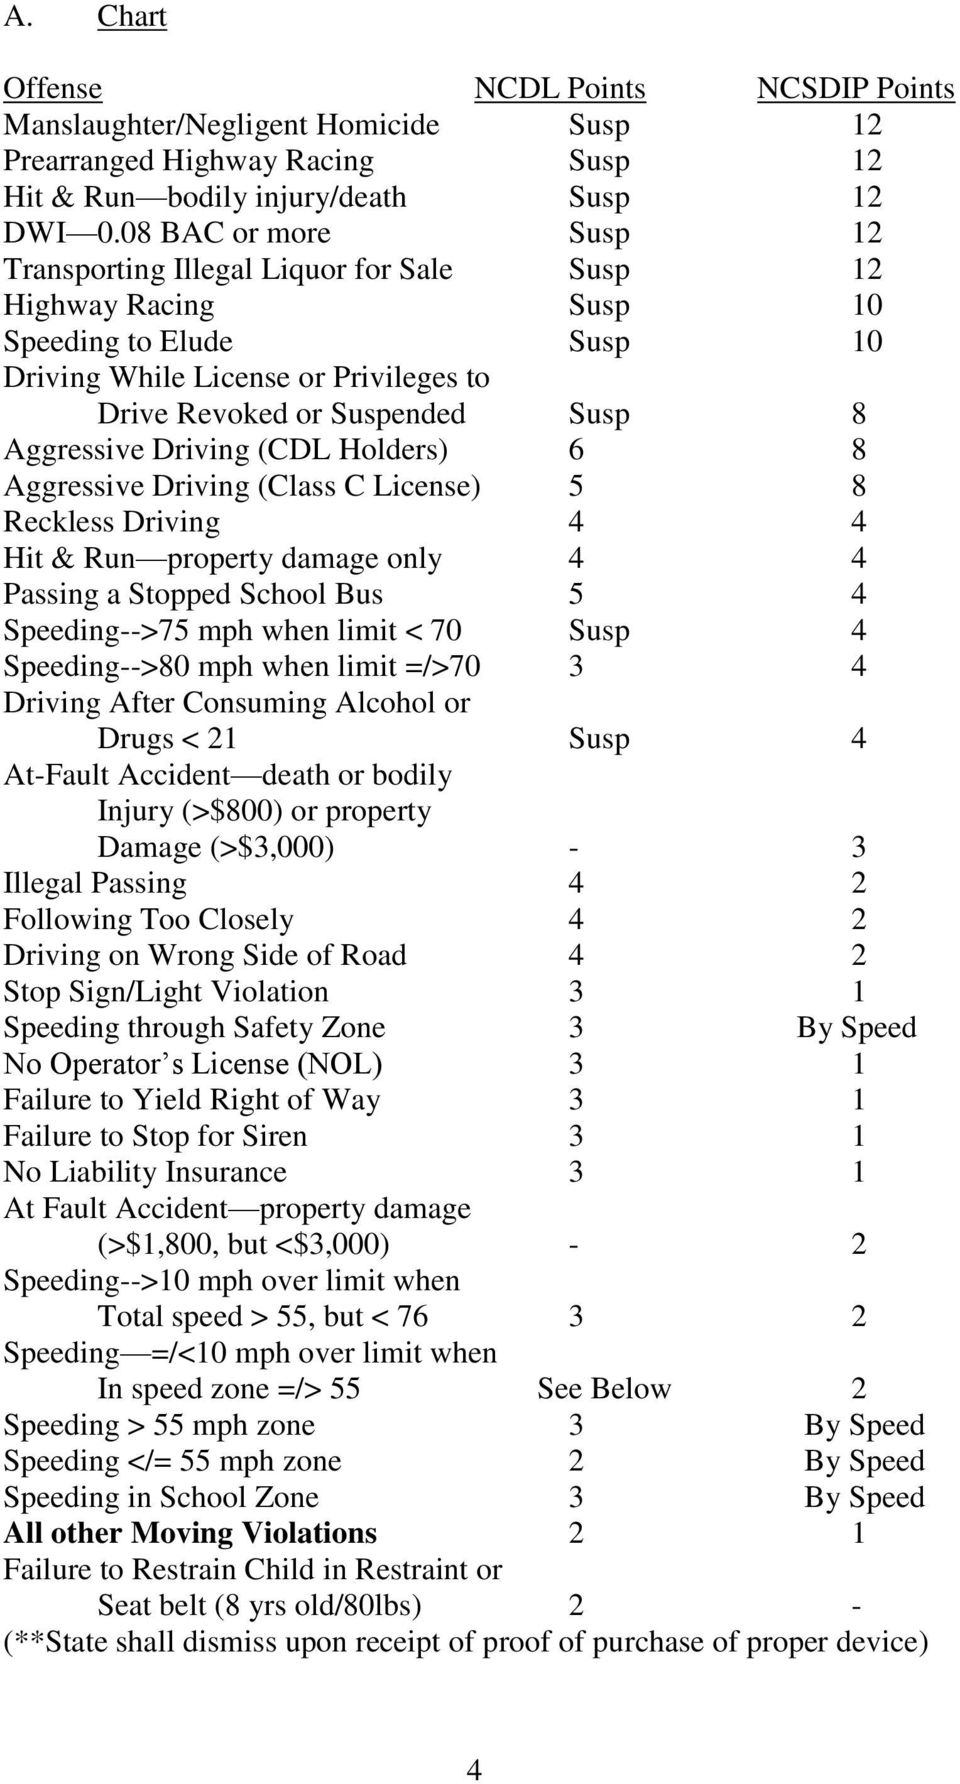 Aggressive Driving (CDL Holders) 6 8 Aggressive Driving (Class C License) 5 8 Reckless Driving 4 4 Hit & Run property damage only 4 4 Passing a Stopped School Bus 5 4 Speeding-->75 mph when limit <